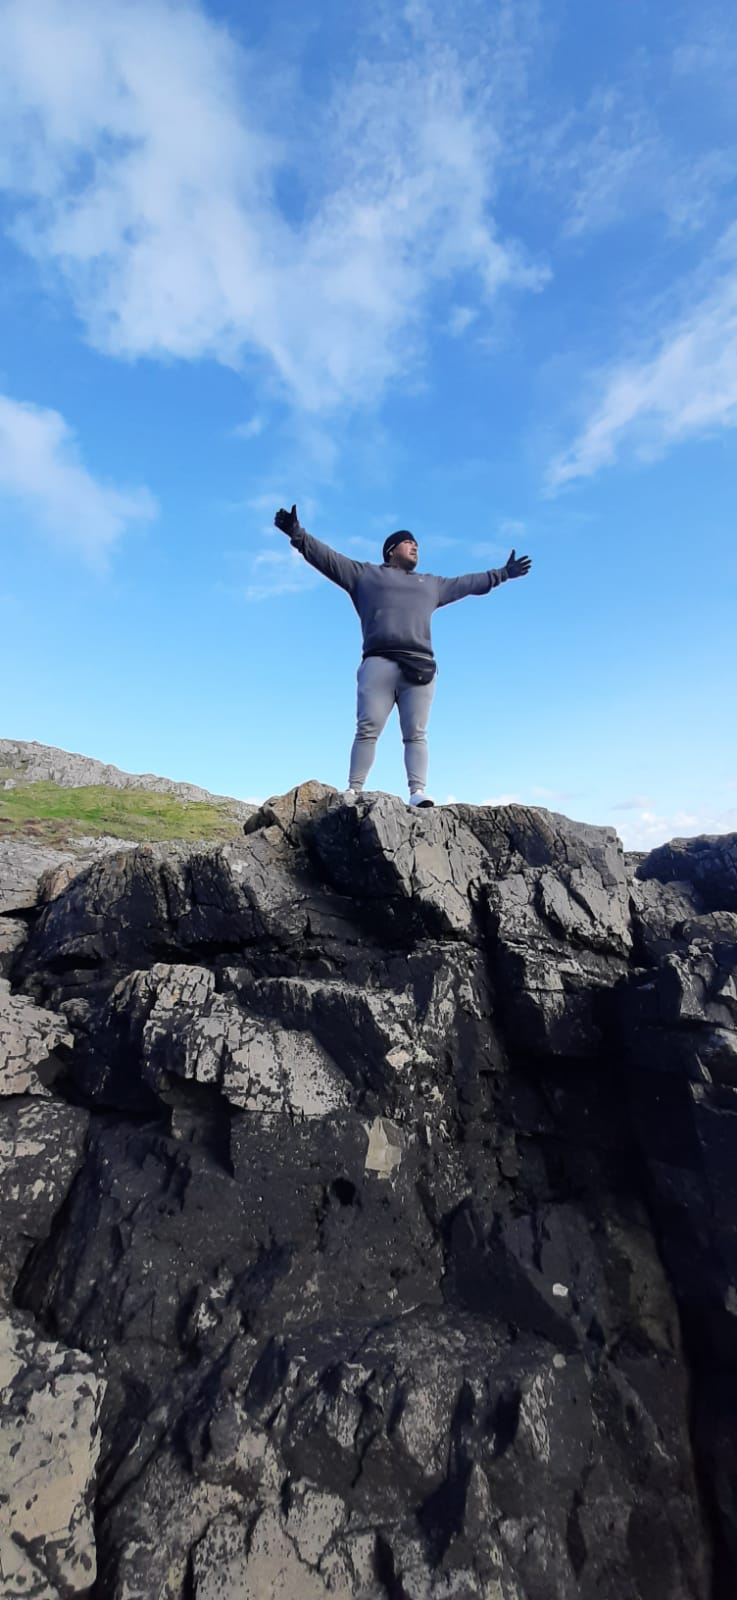 Armando stands on a high rock with his arms stretched wide with the blue expanse of the sky behind him